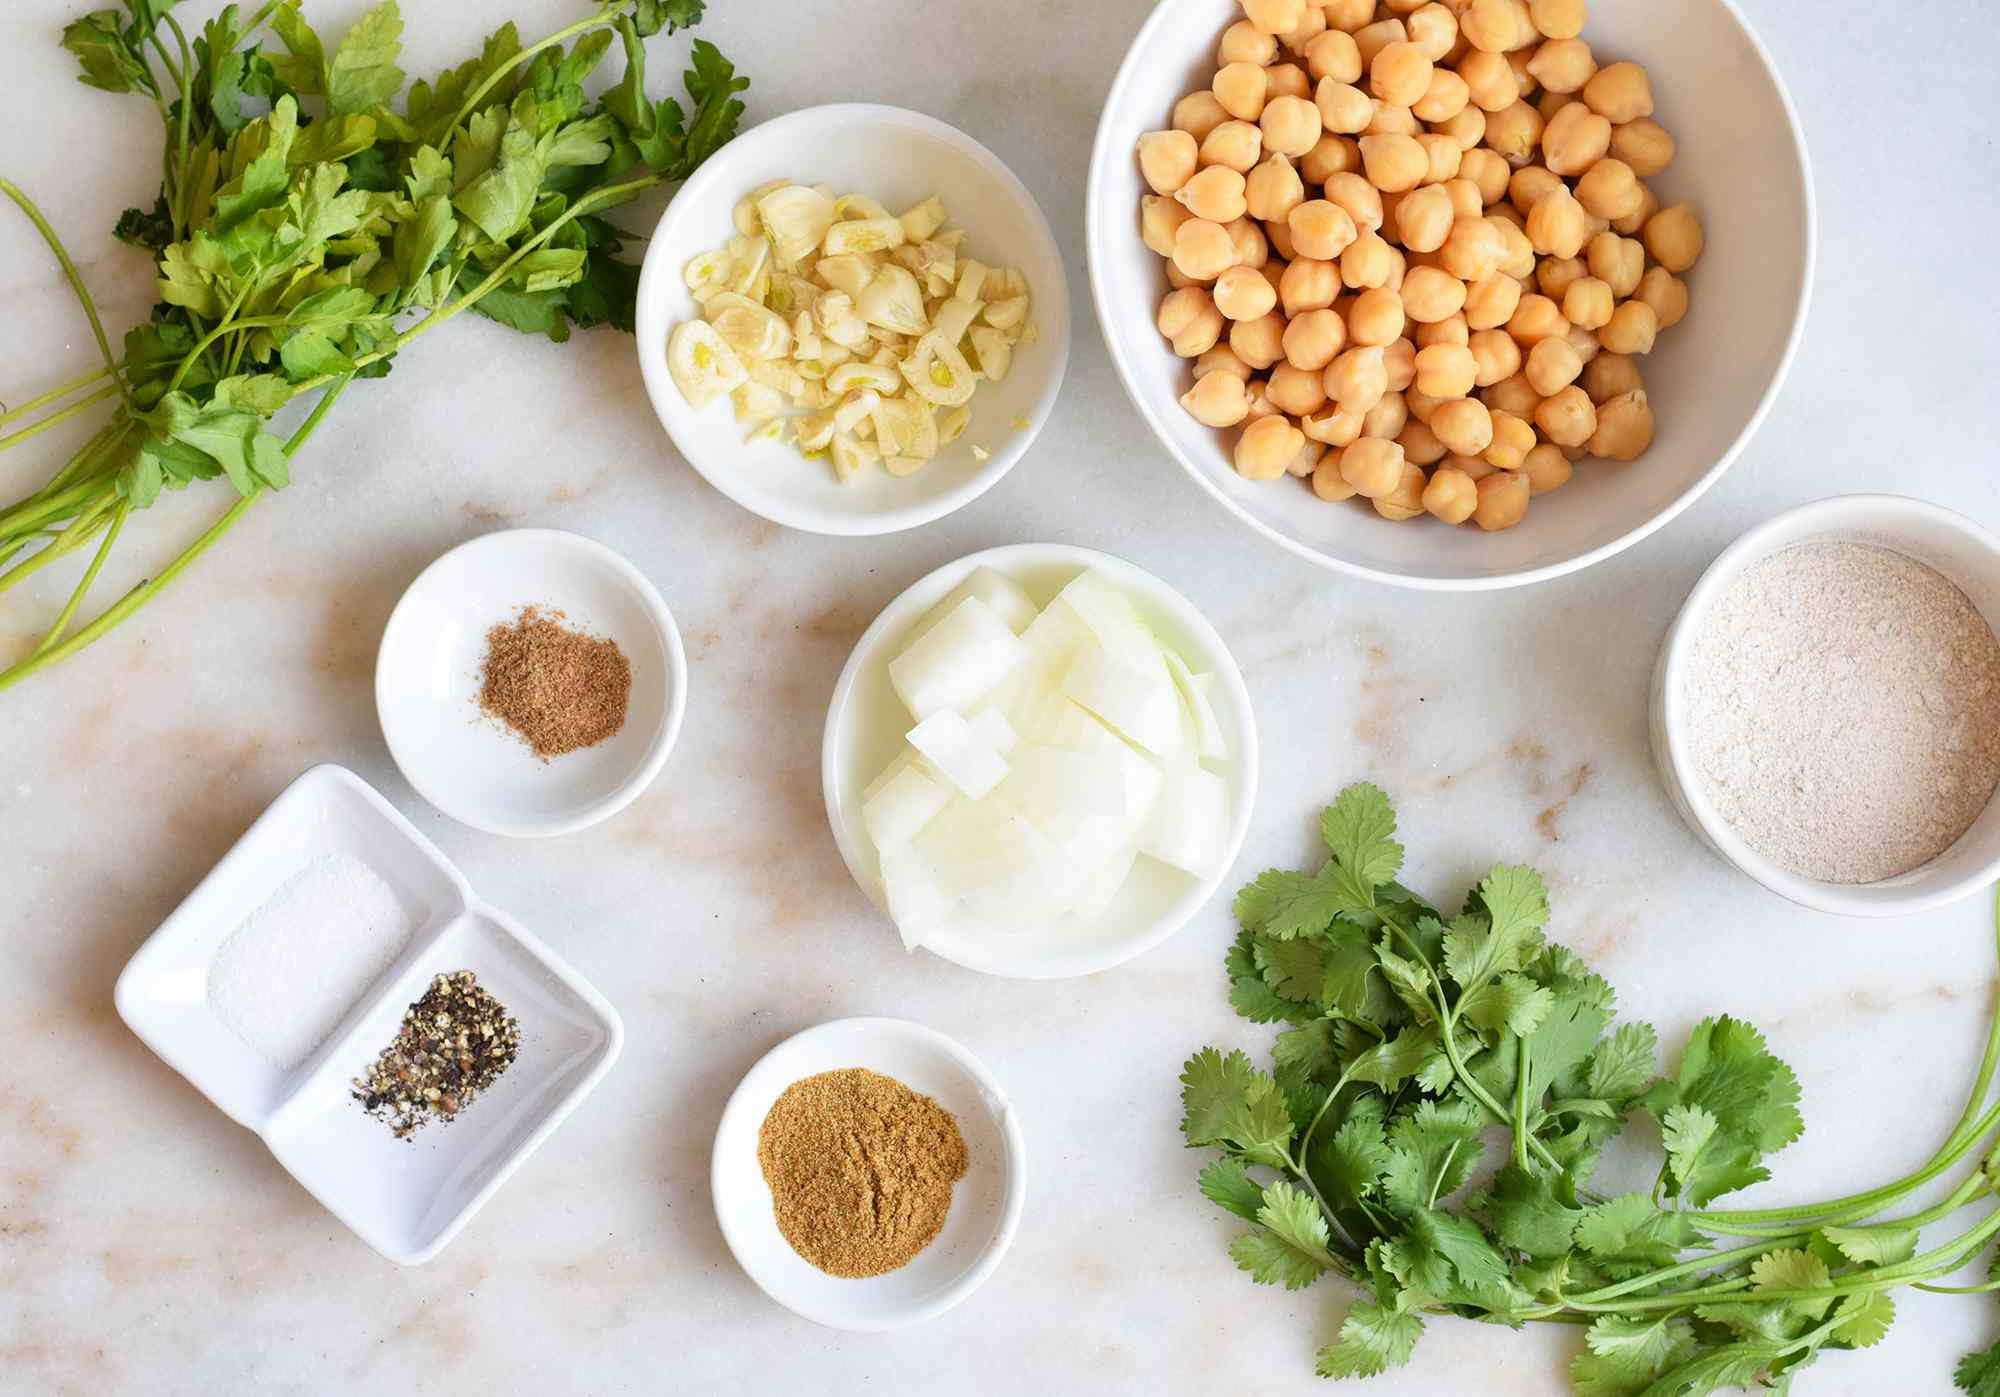 ingredients for air fryer falafel on a marble board